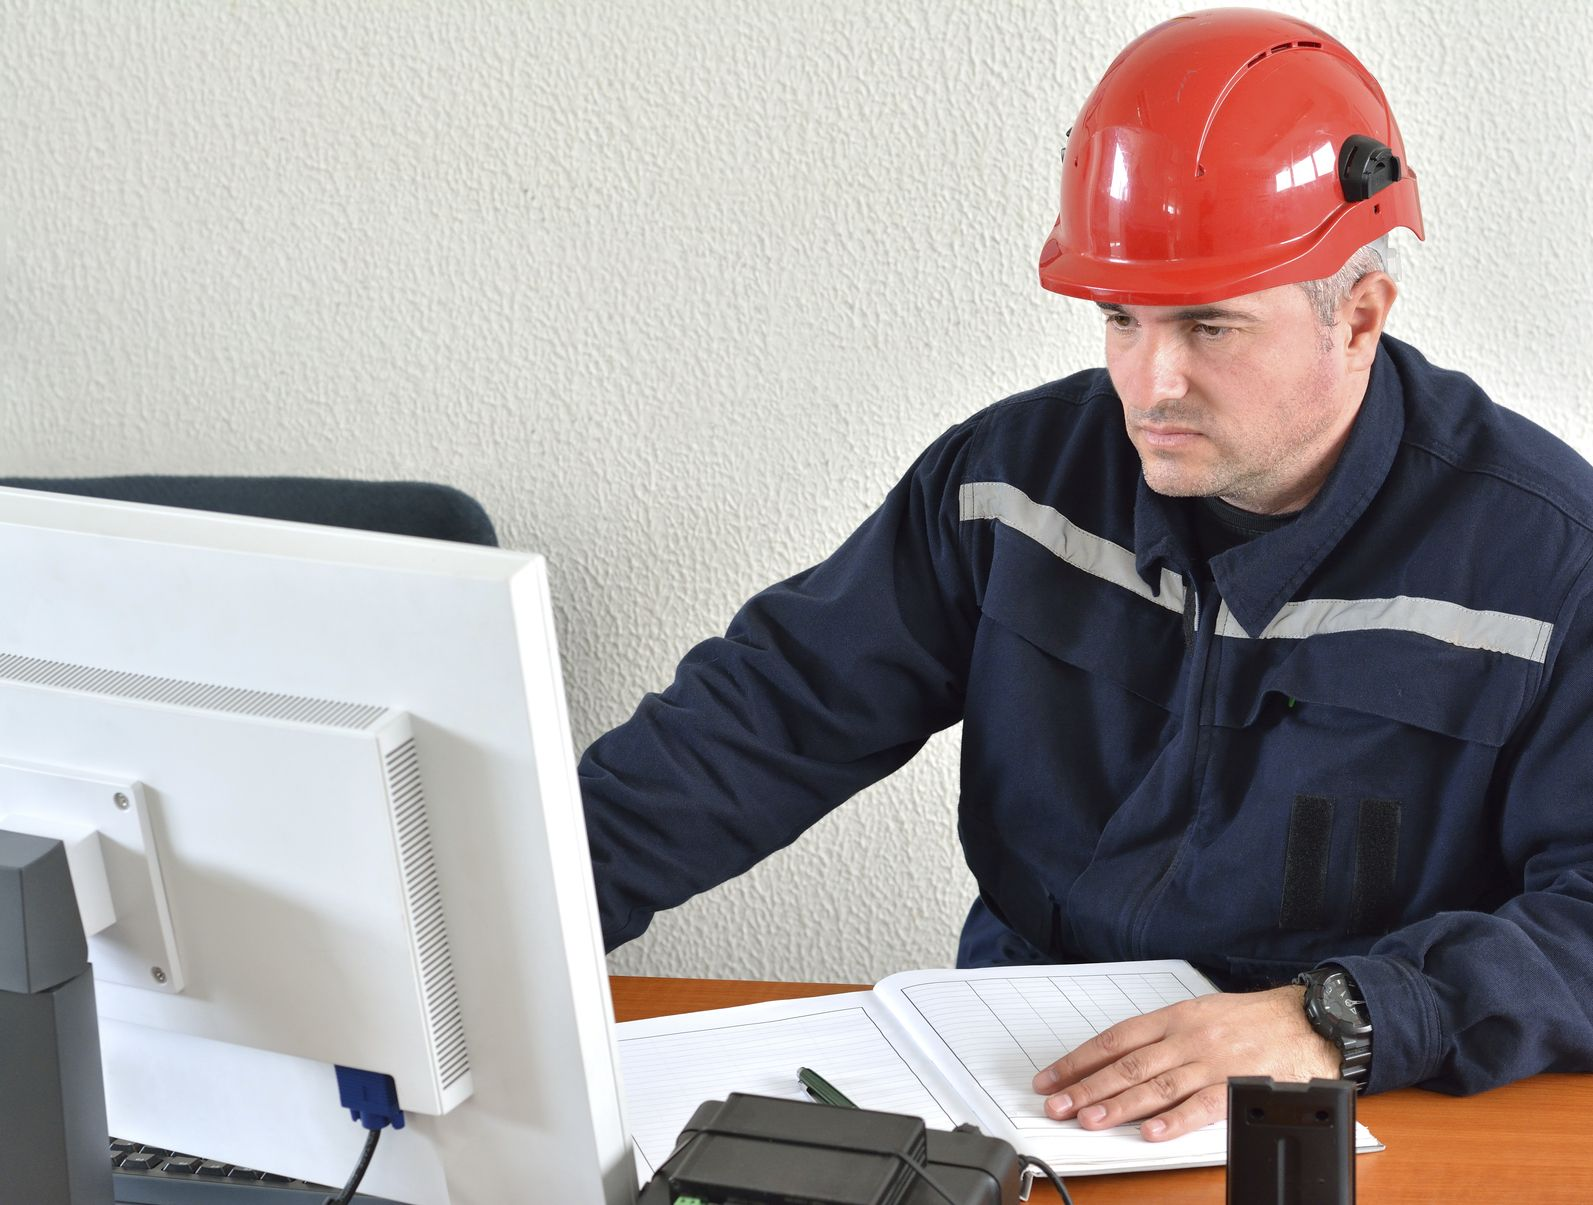 If You Re New To The World Of Workers Comp You May Have